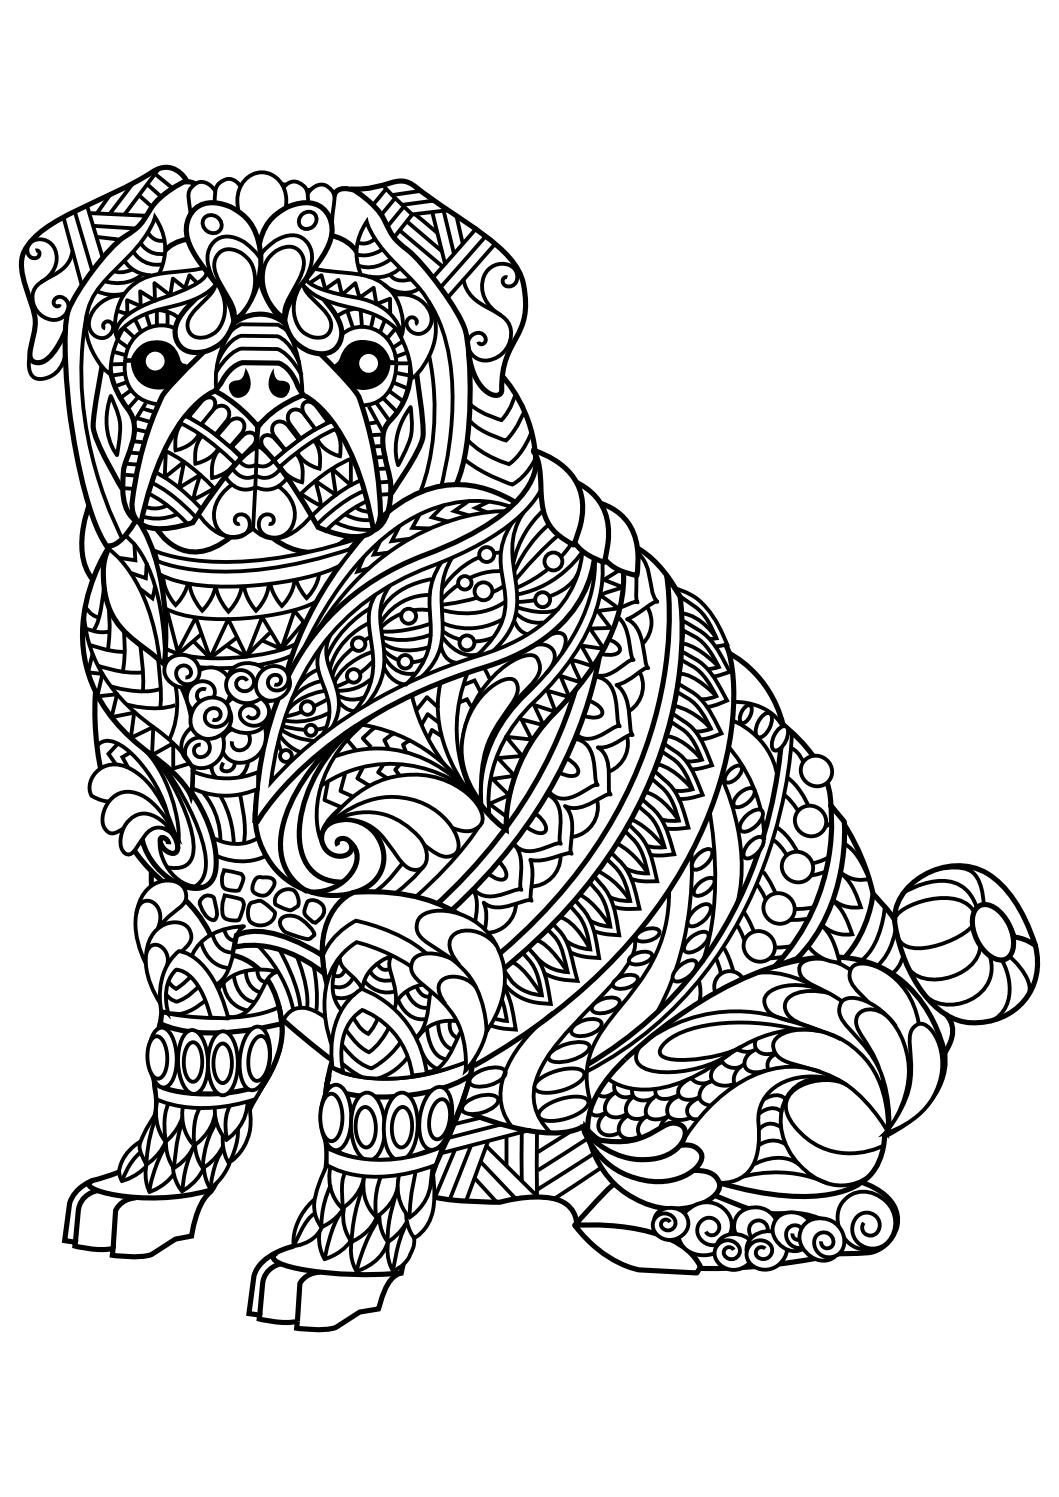 Coloring pitchers of animals - Animal Coloring Pages Pdf